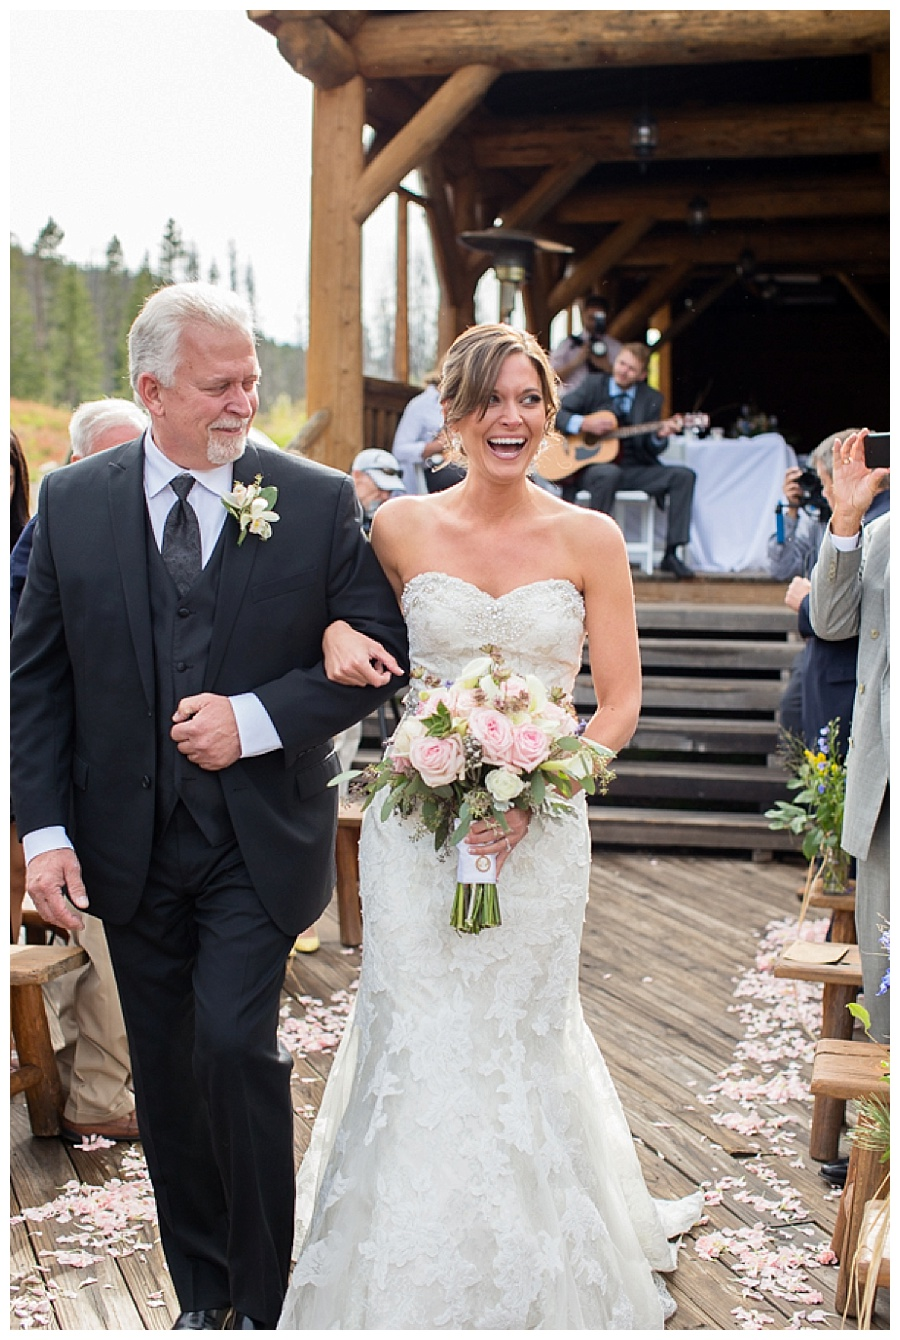 06 Bride walking down isle at Piney River Ranch